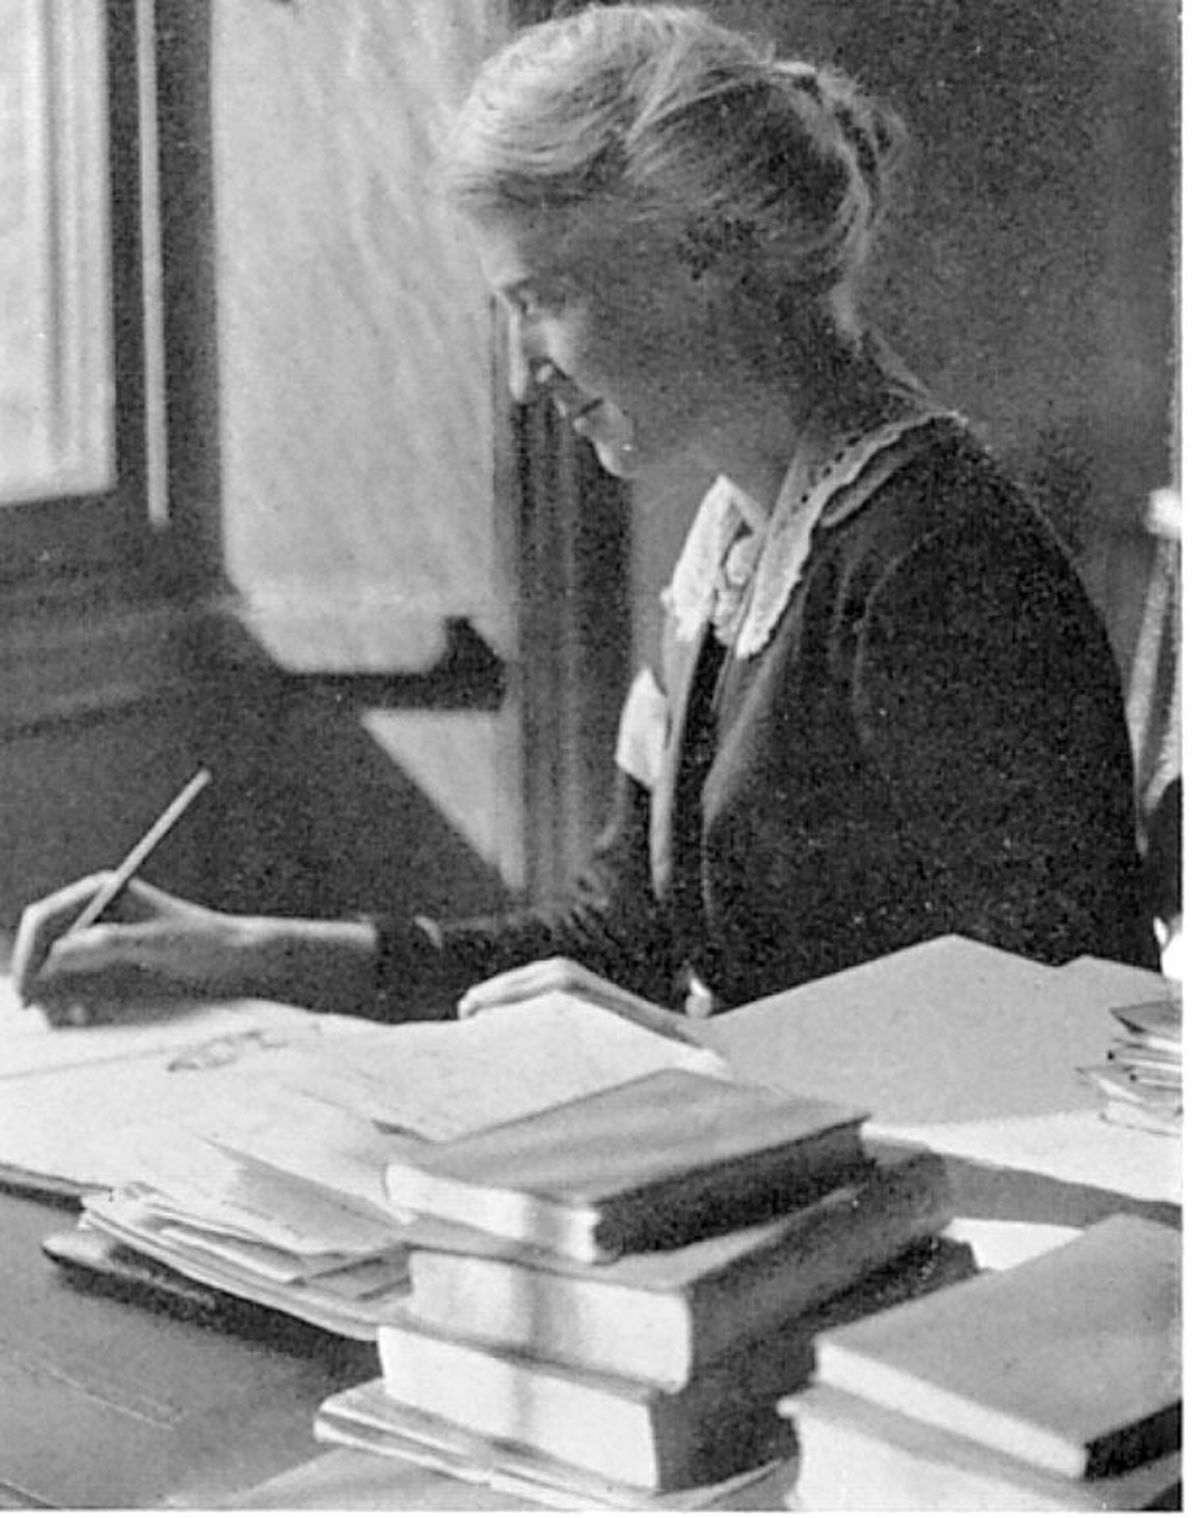 Eglantyne at her desk in the Save The Children Fund office in about 1921.